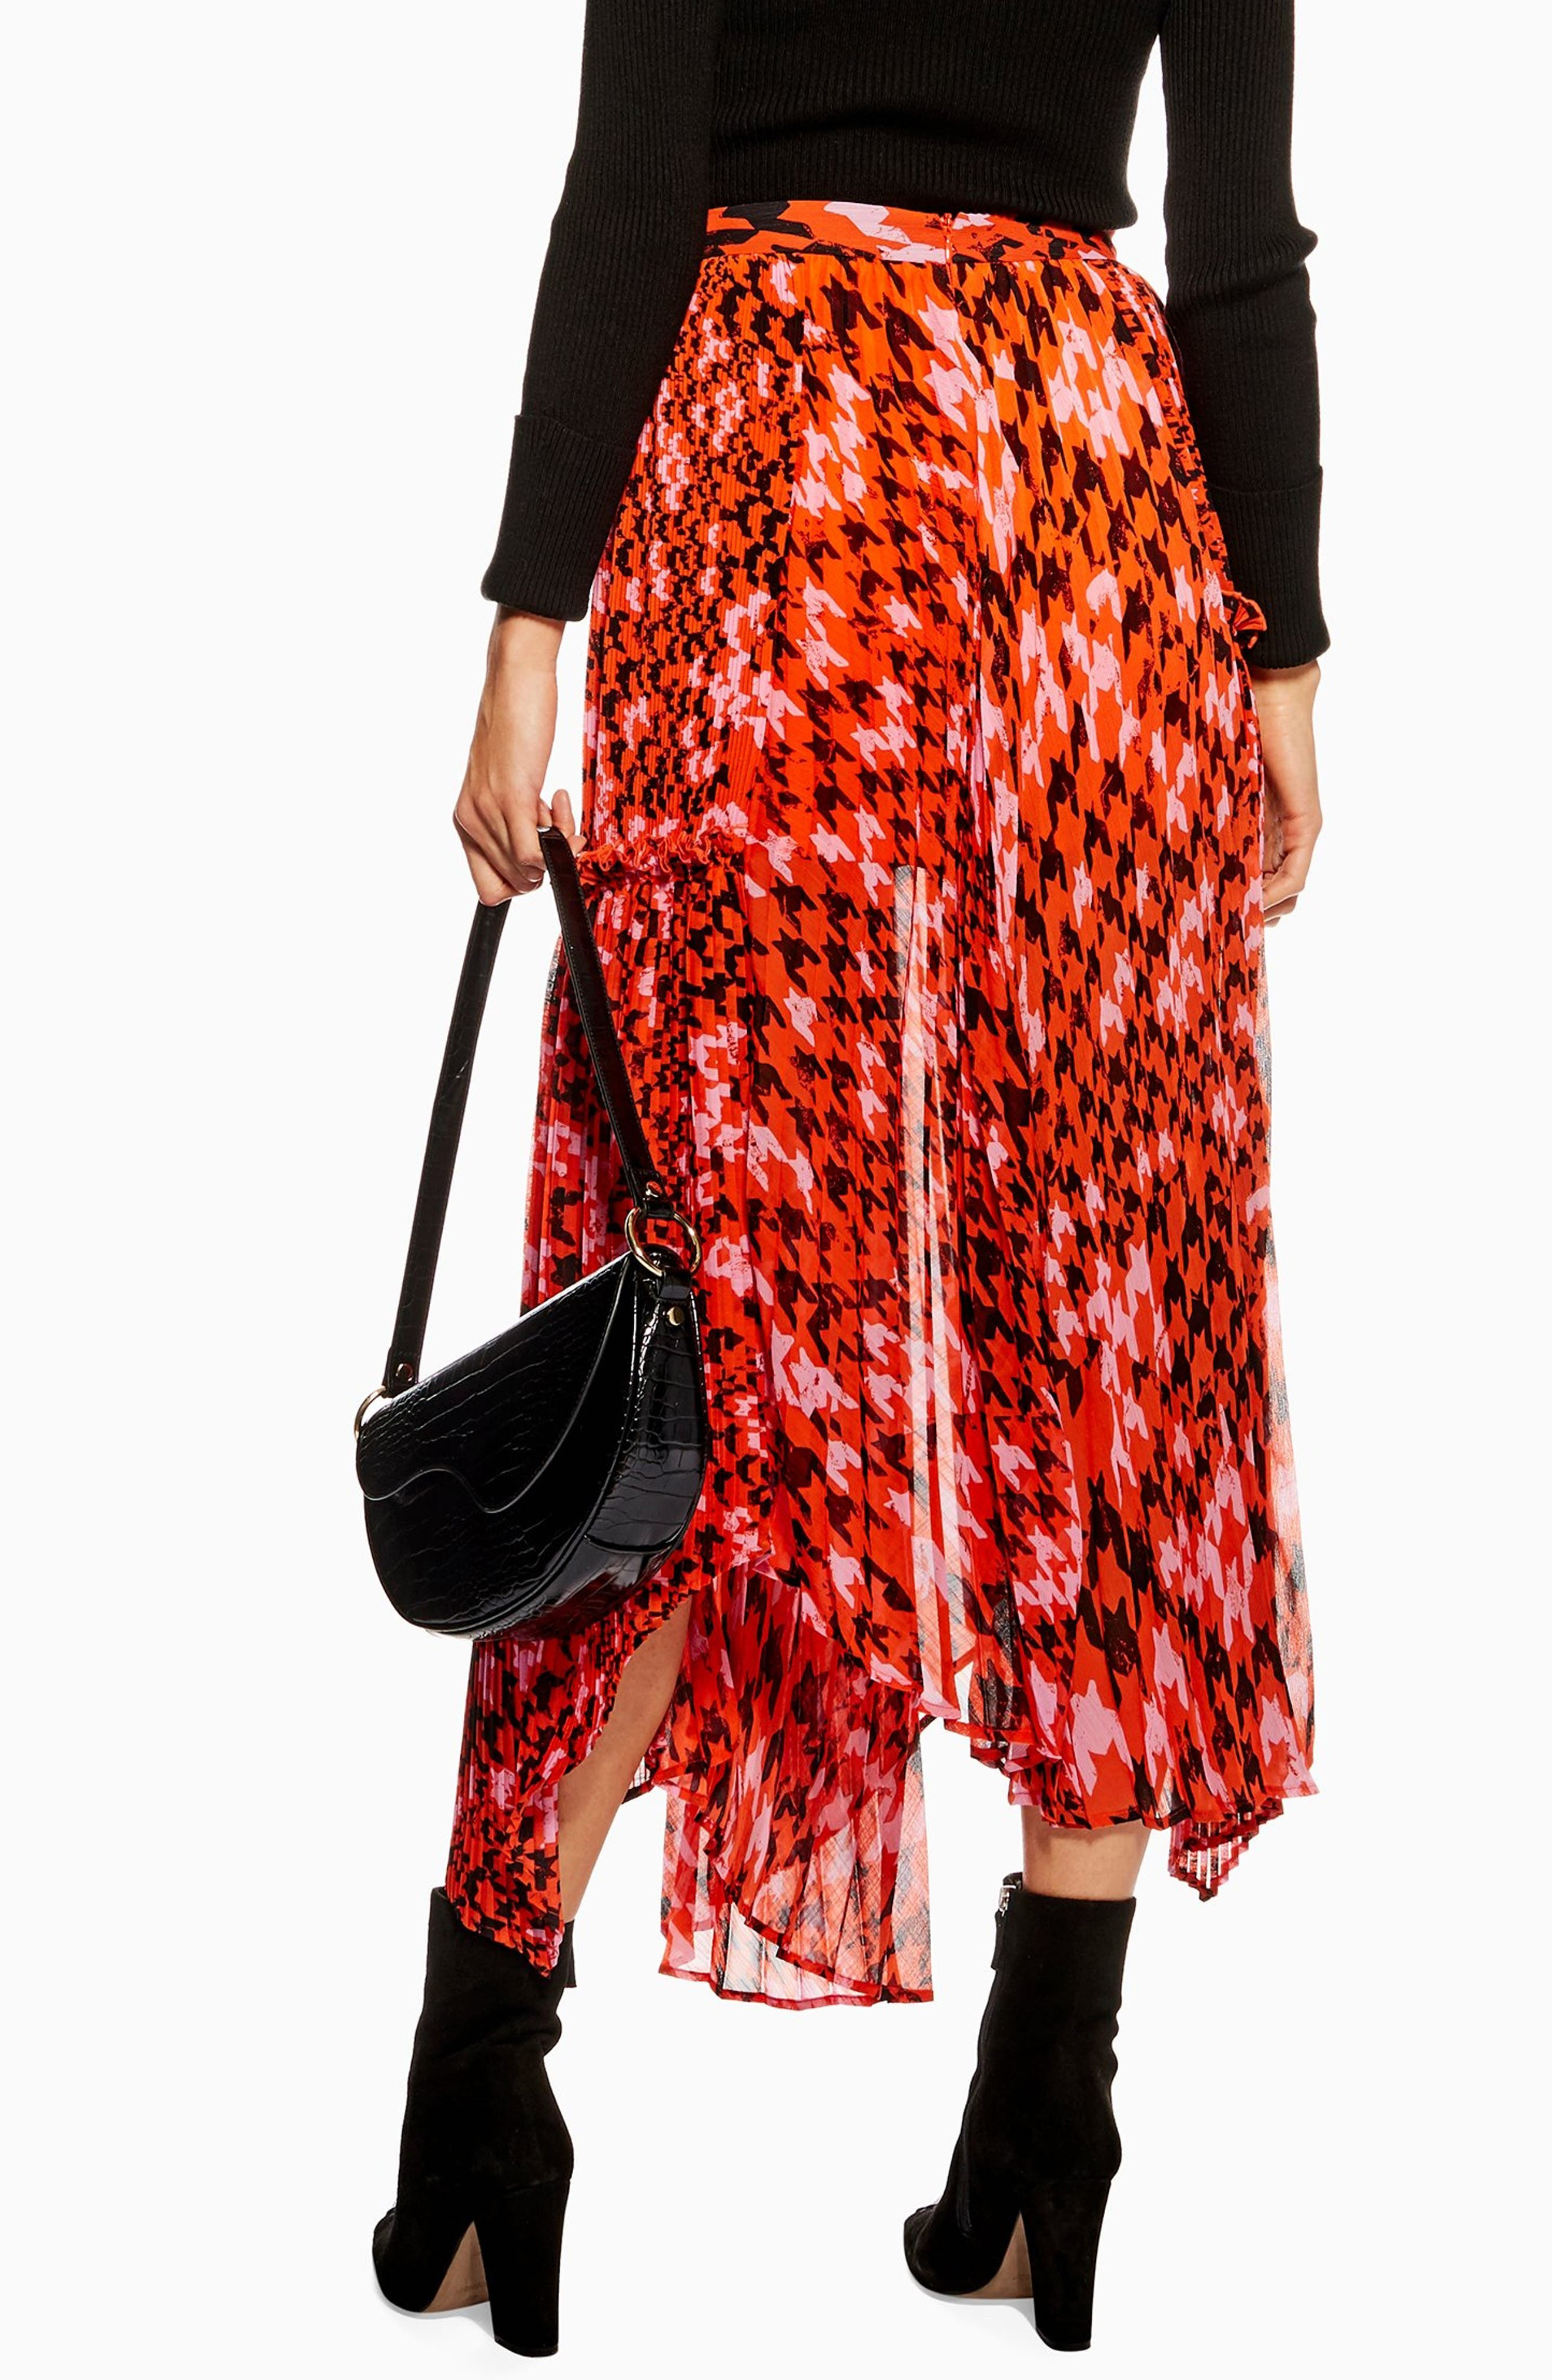 a231007633 Women's Topshop Skirts | Nordstrom